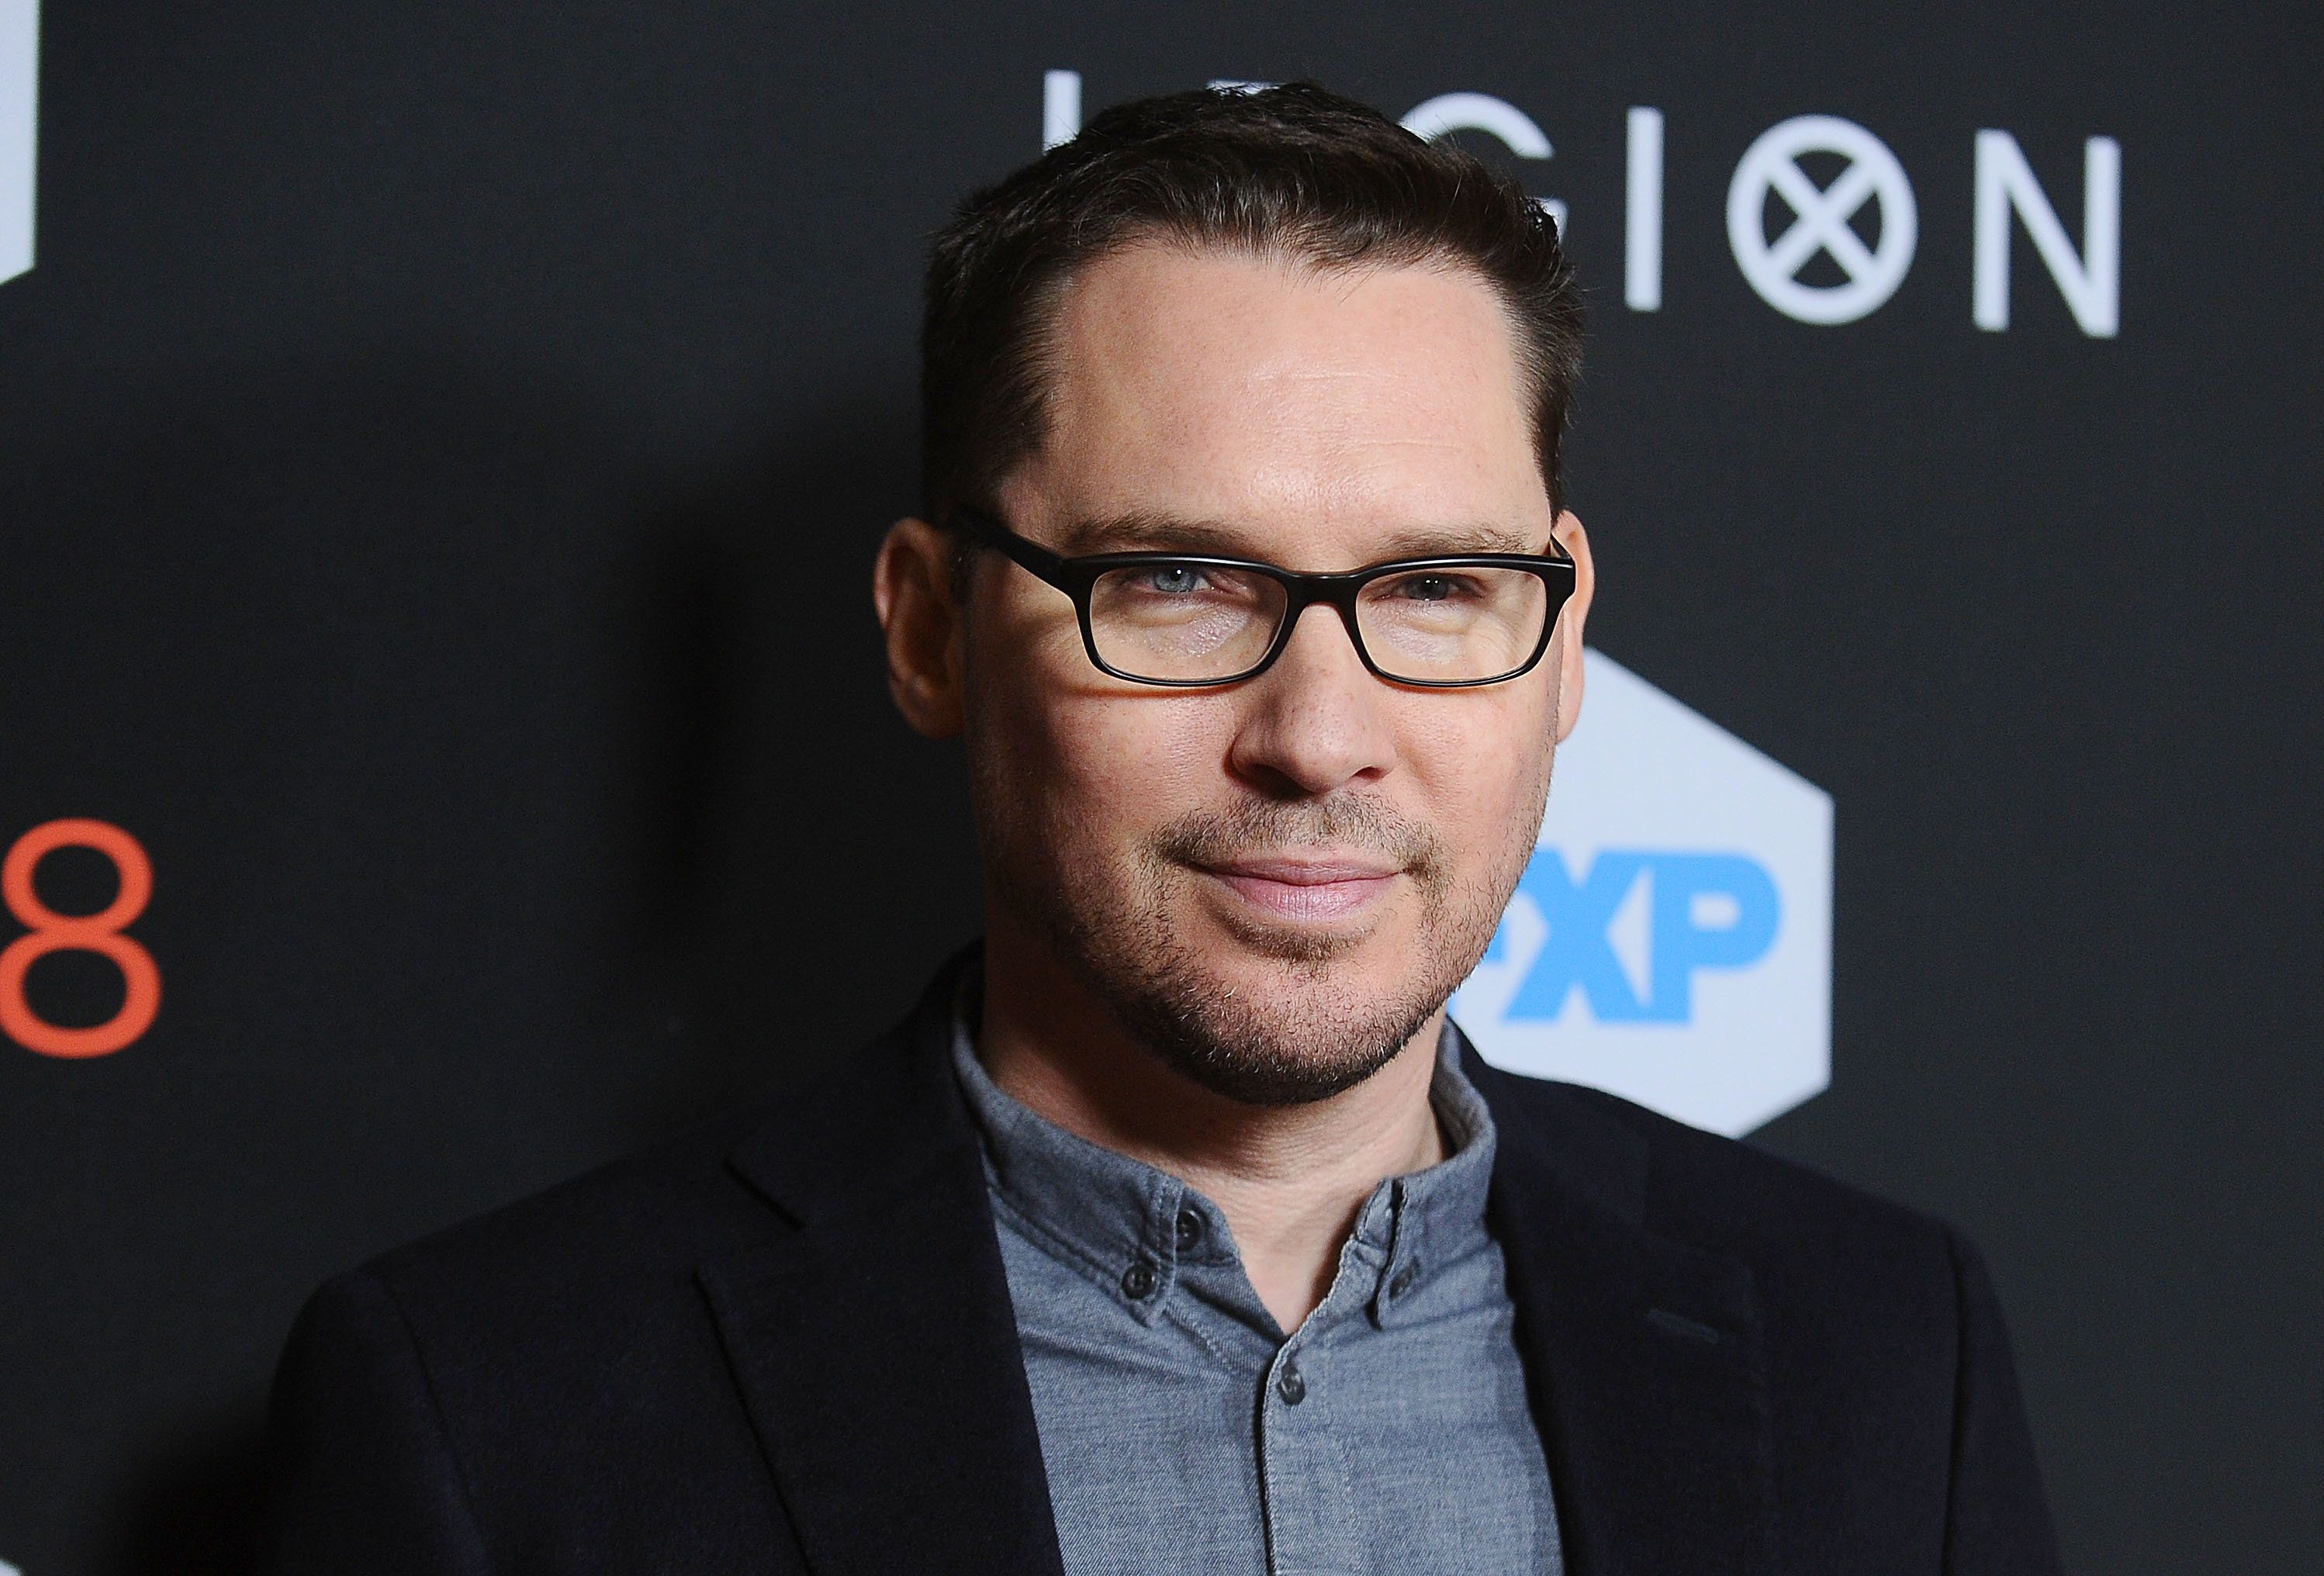 WEST HOLLYWOOD, CA - JANUARY 26:  Producer Bryan Singer attends the premiere of 'Legion' at Pacific Design Center on January 26, 2017 in West Hollywood, California.  (Photo by Jason LaVeris/FilmMagic)